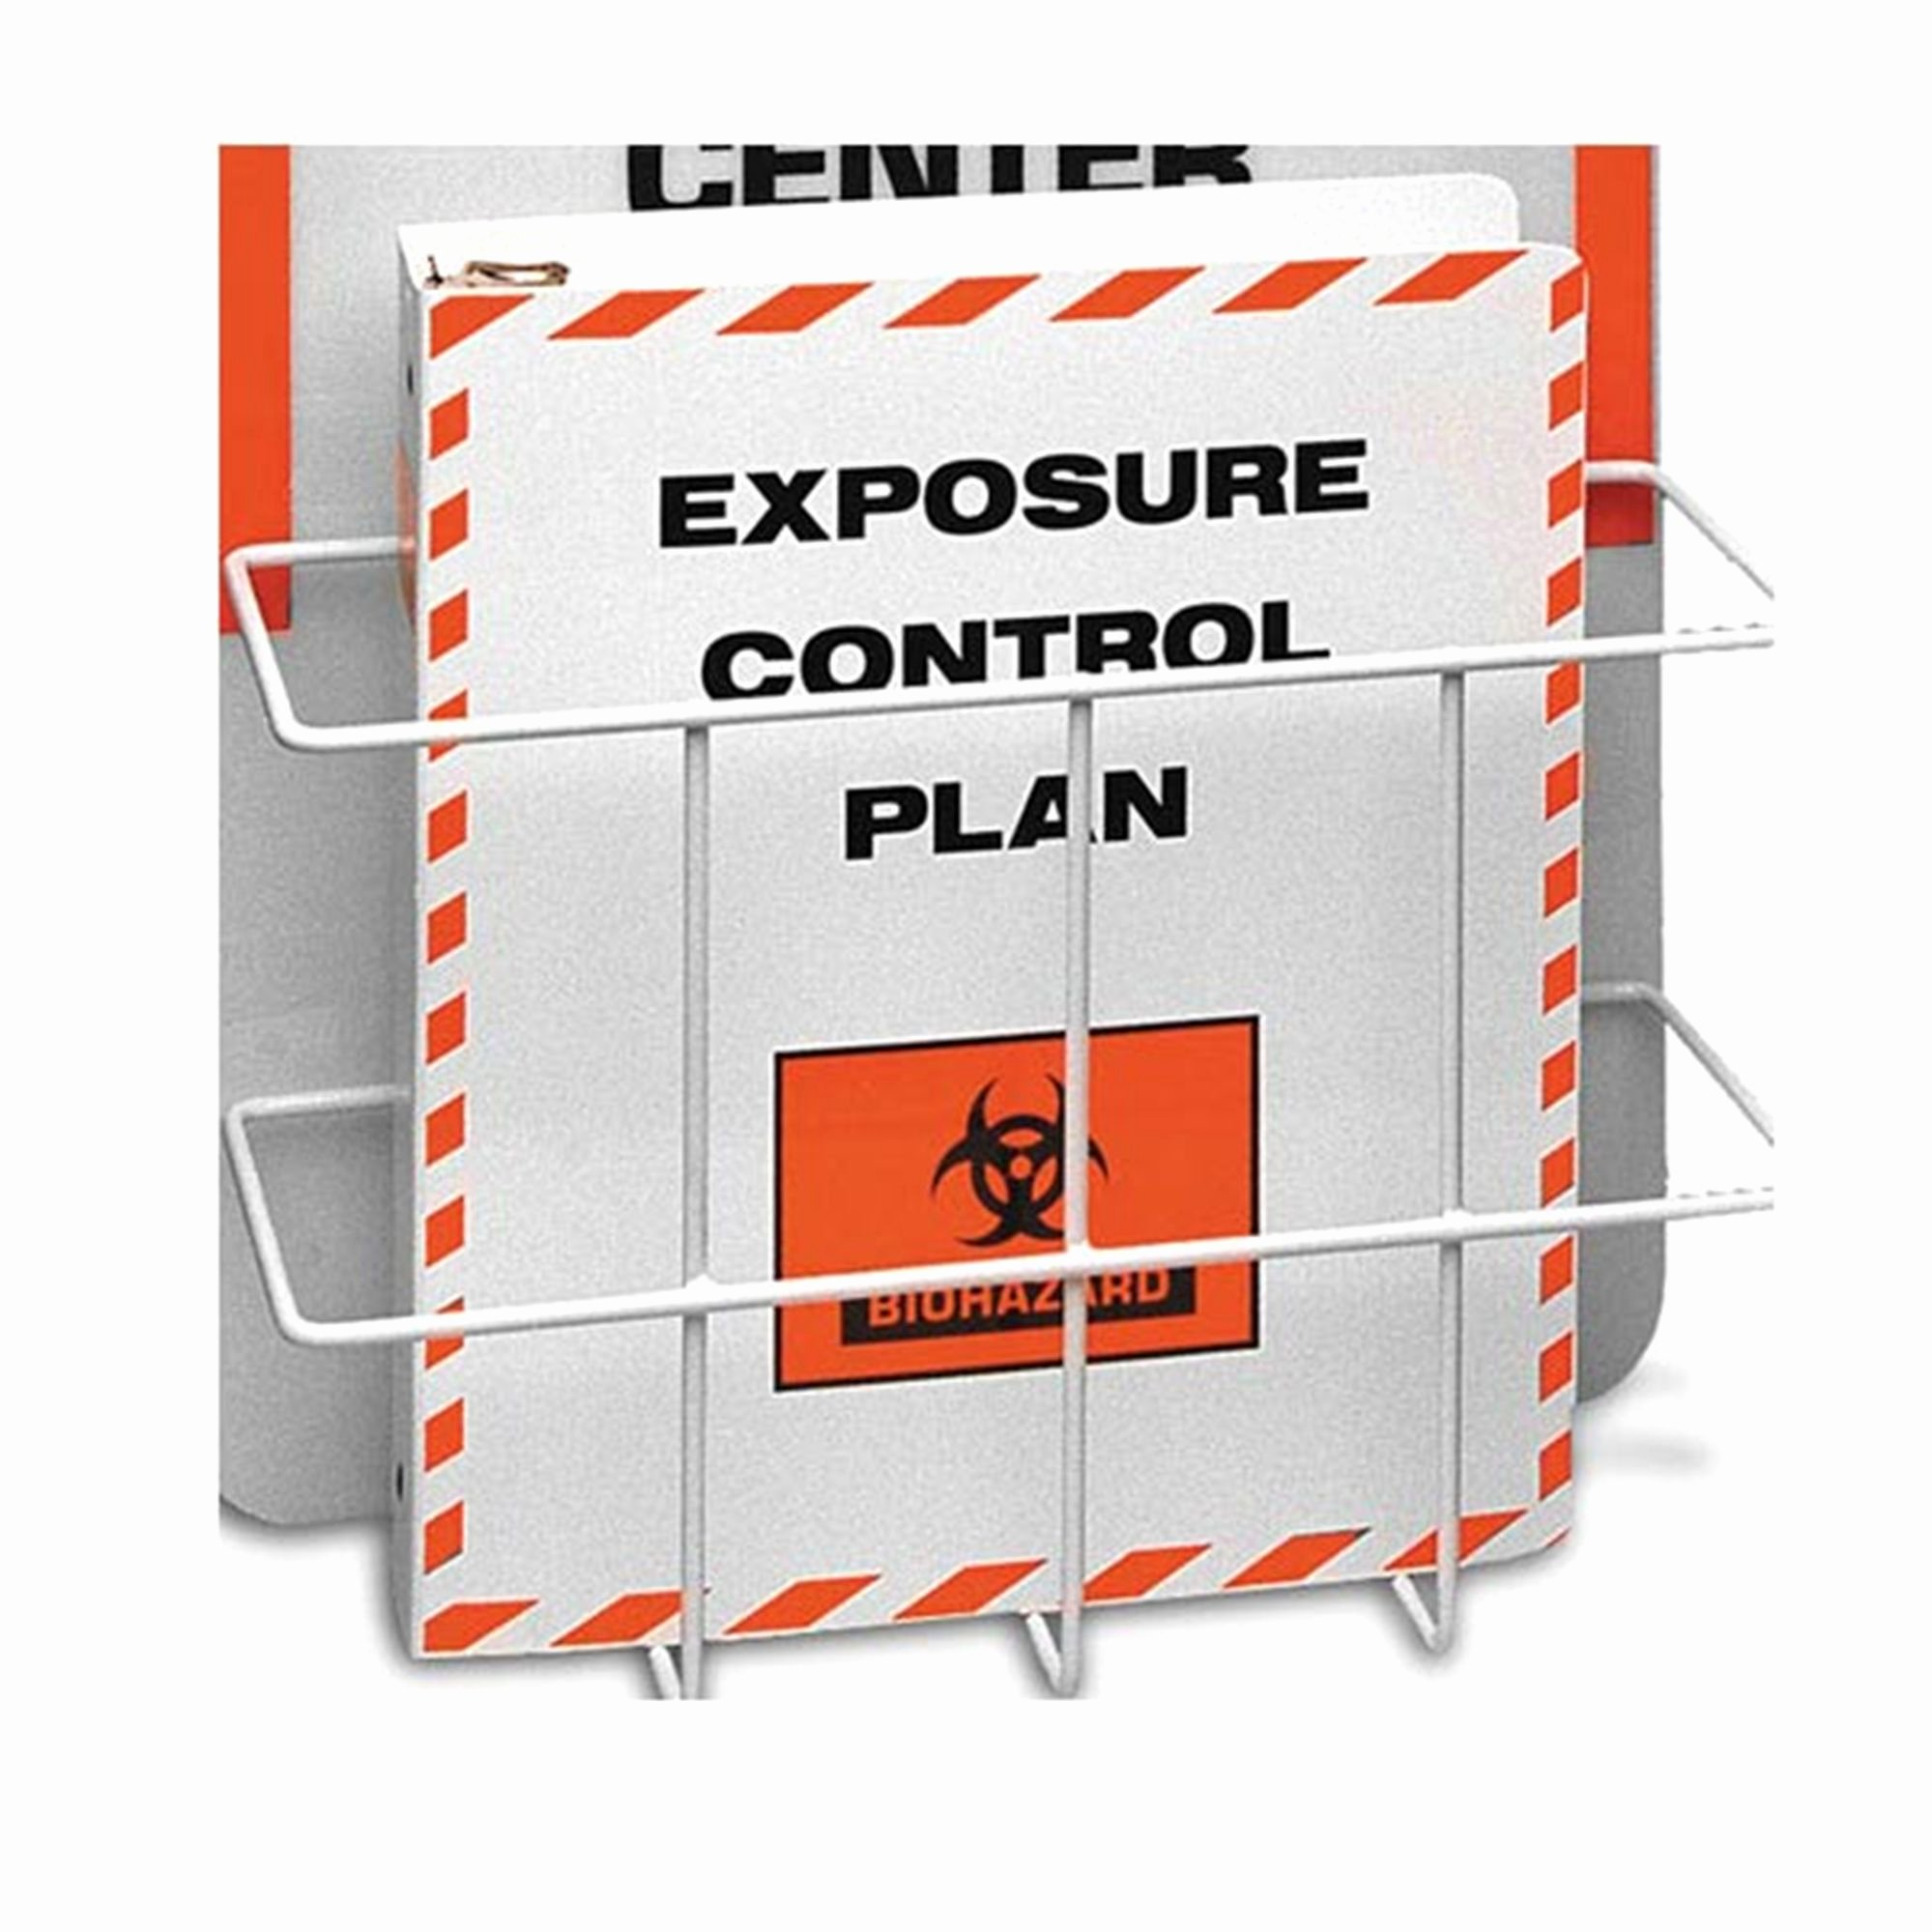 Osha Chemical Hygiene Plan Template Best Of Exposure Control Program